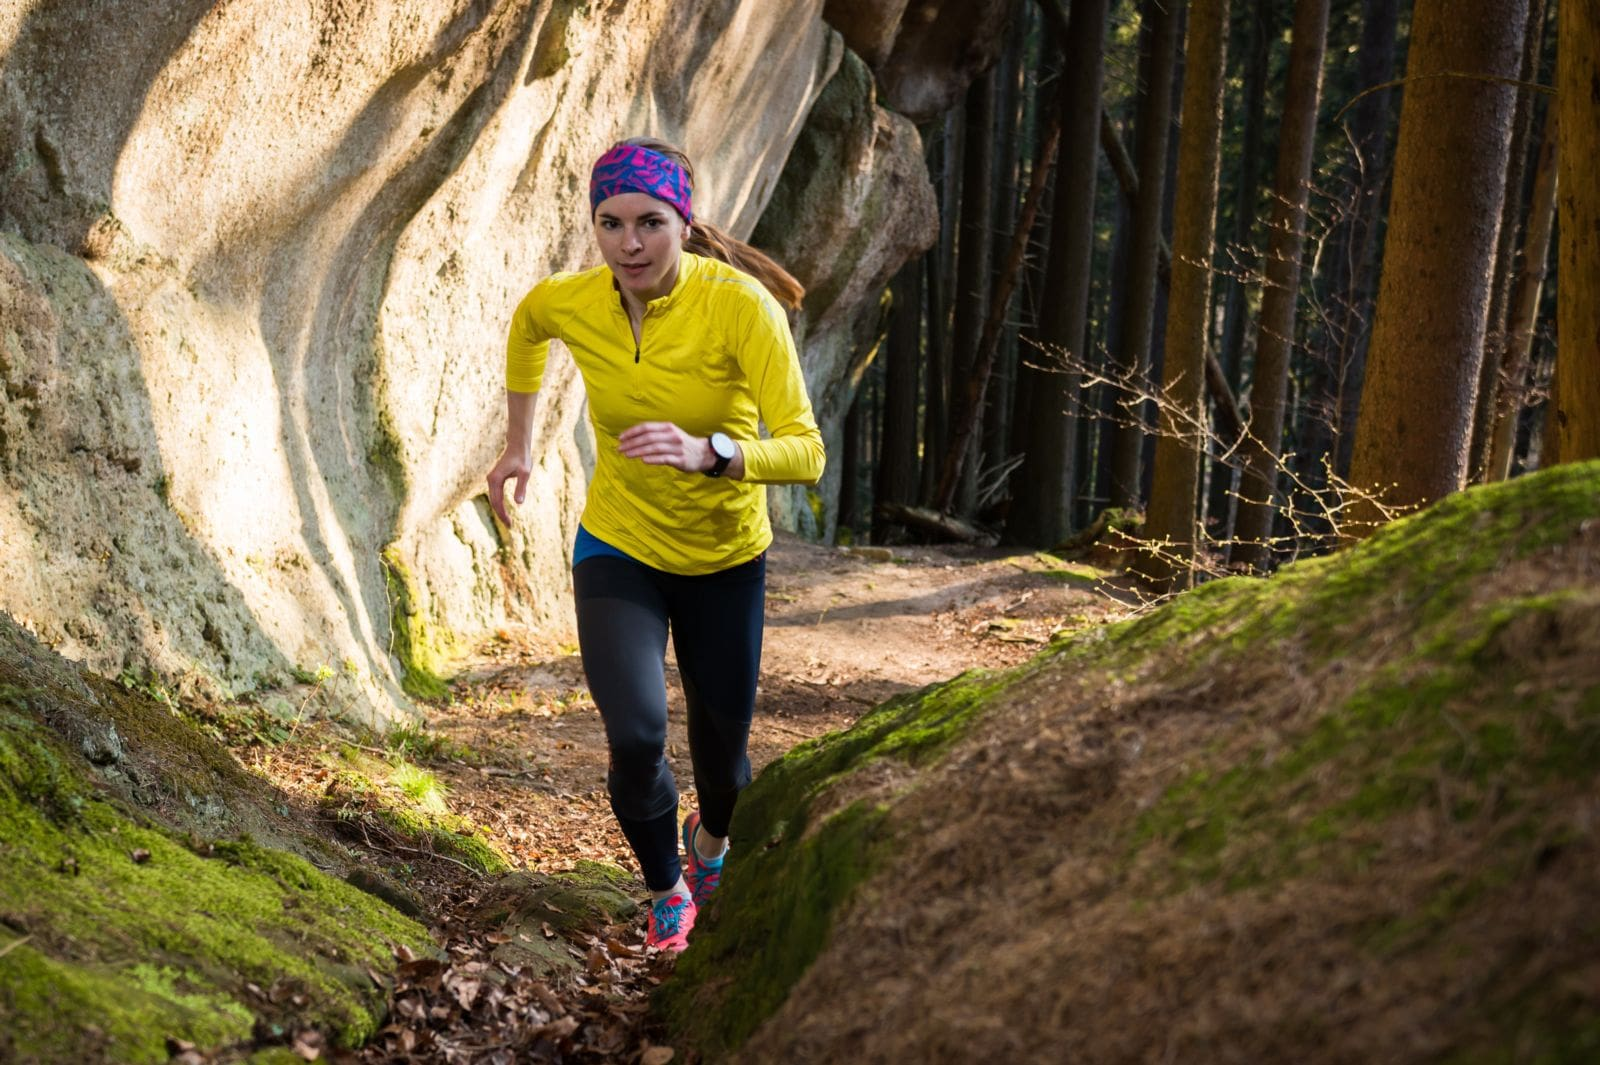 Girl running up a trail in a forest wearing yellow and black